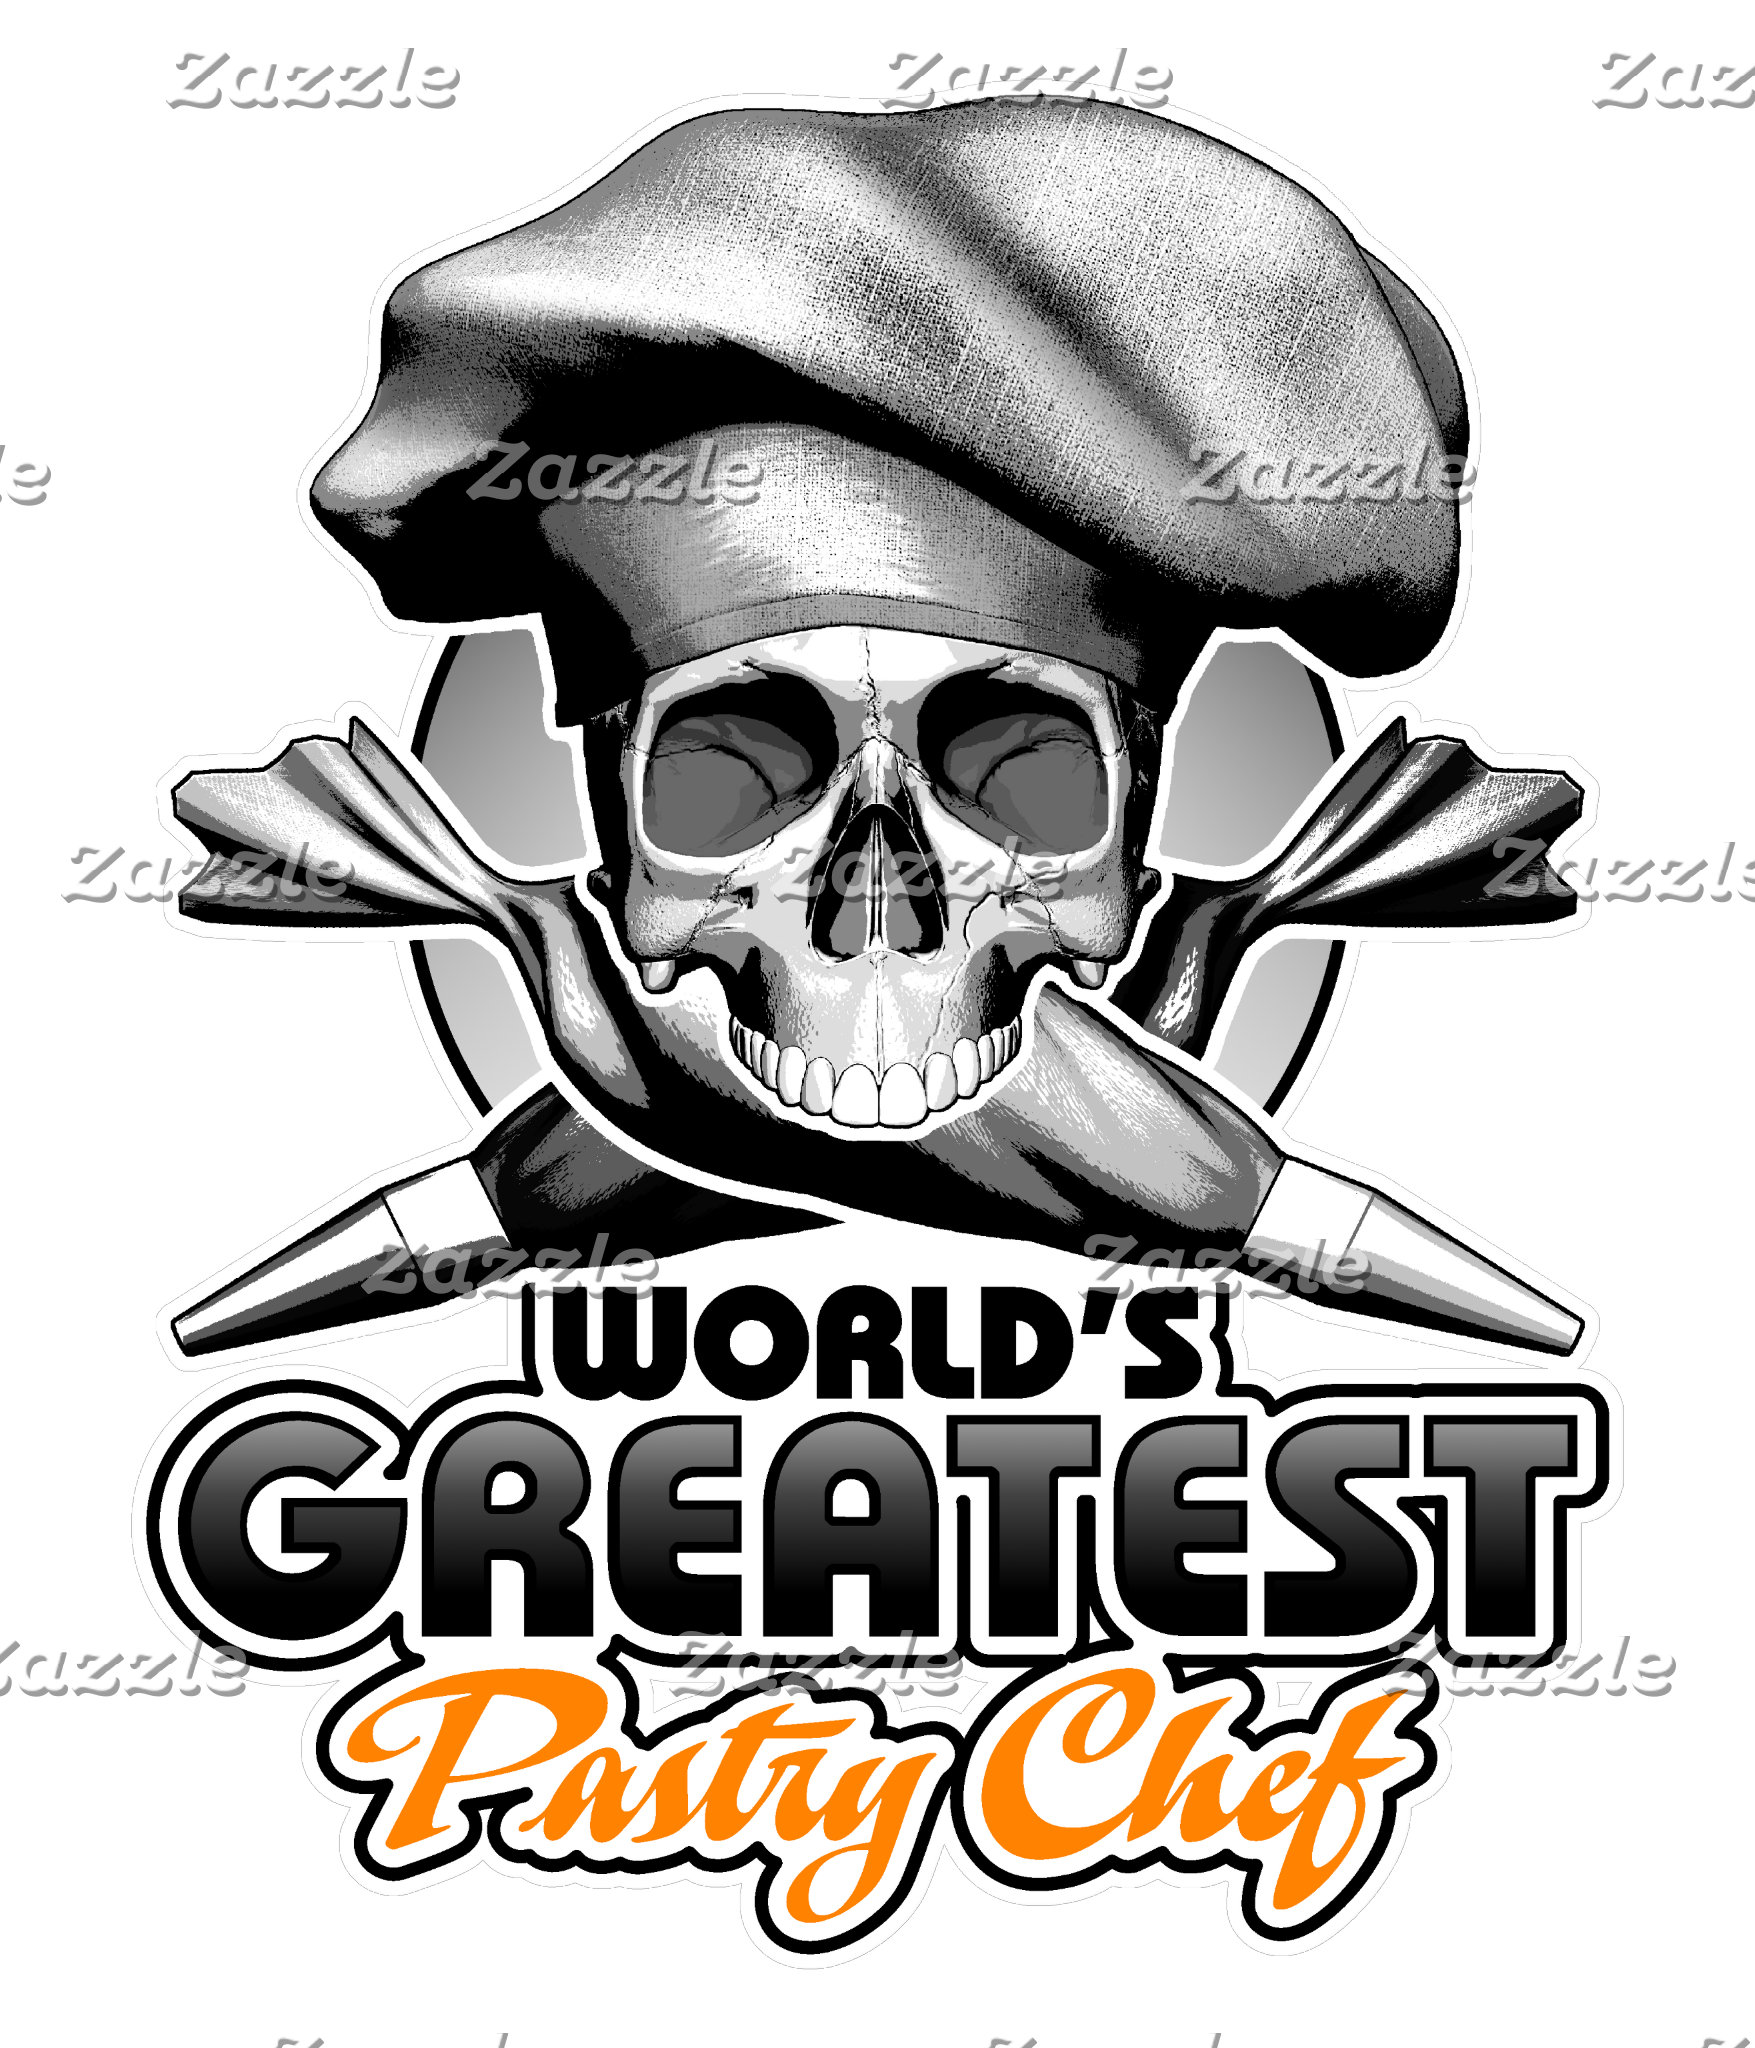 World's Greatest Pastry Chef v6